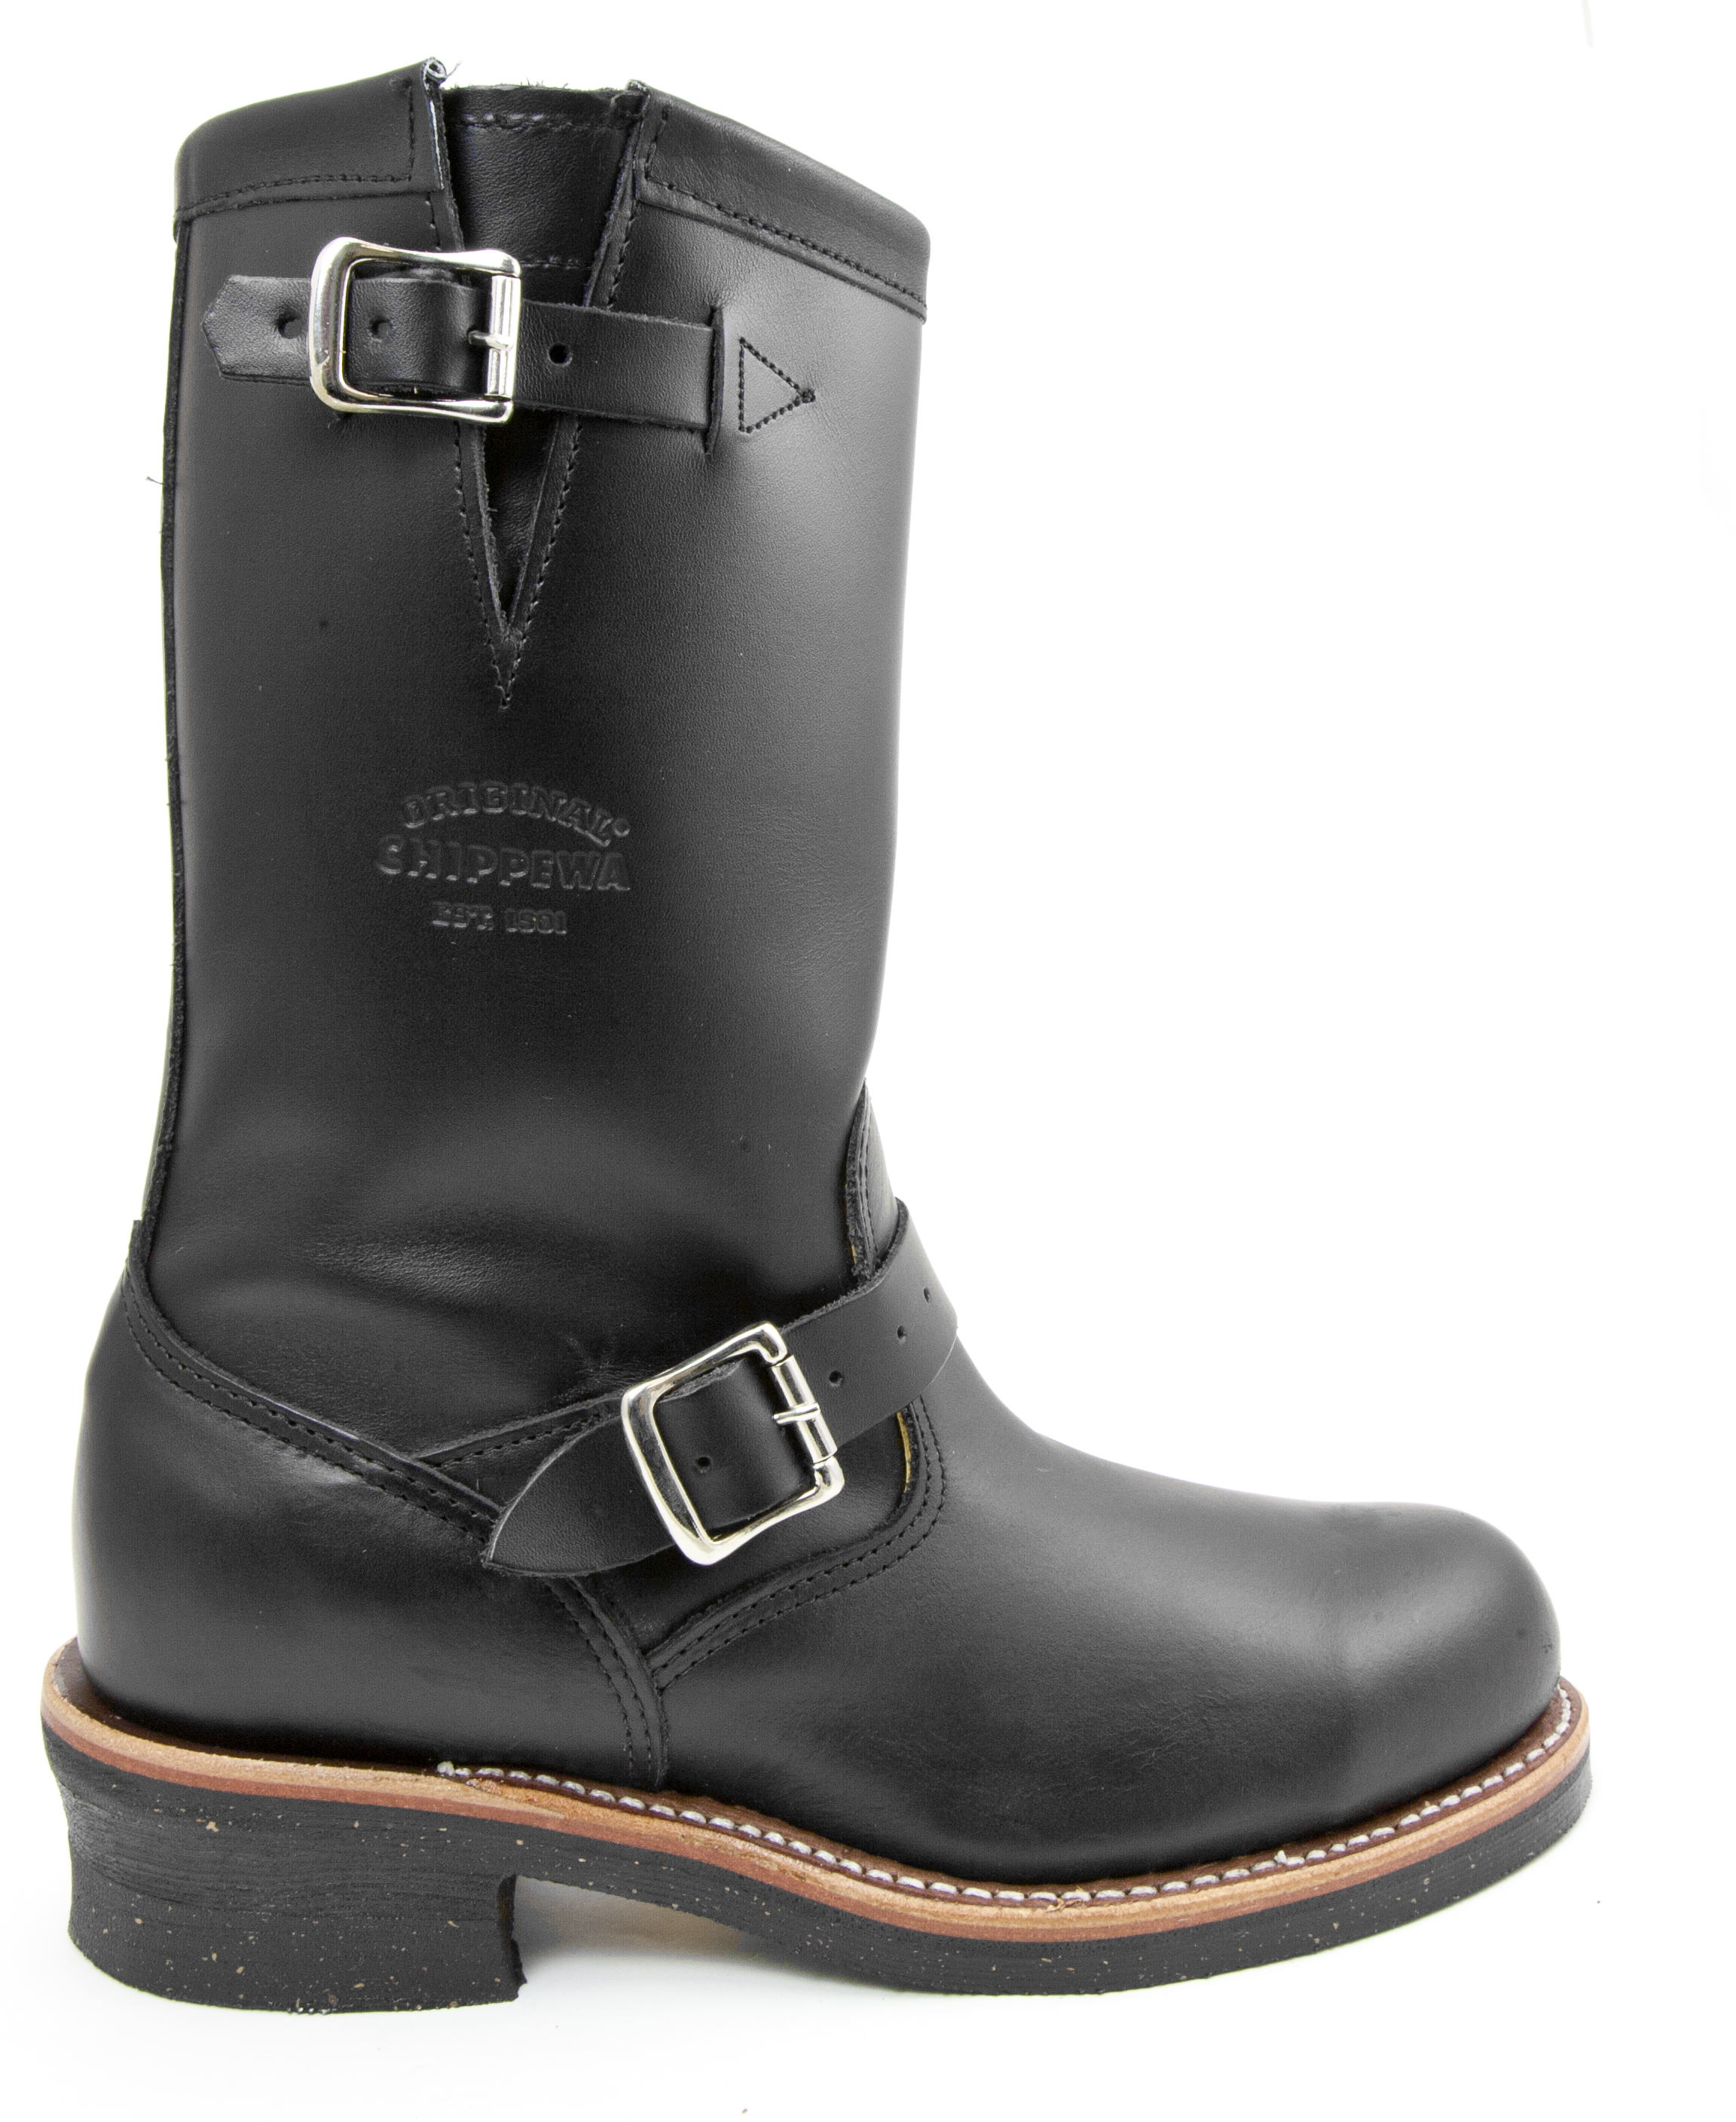 2789c23fce3 Details about Chippewa 1901M03 Black Leather Engineer Motorcycle Steel Toe  Boot Made in USA